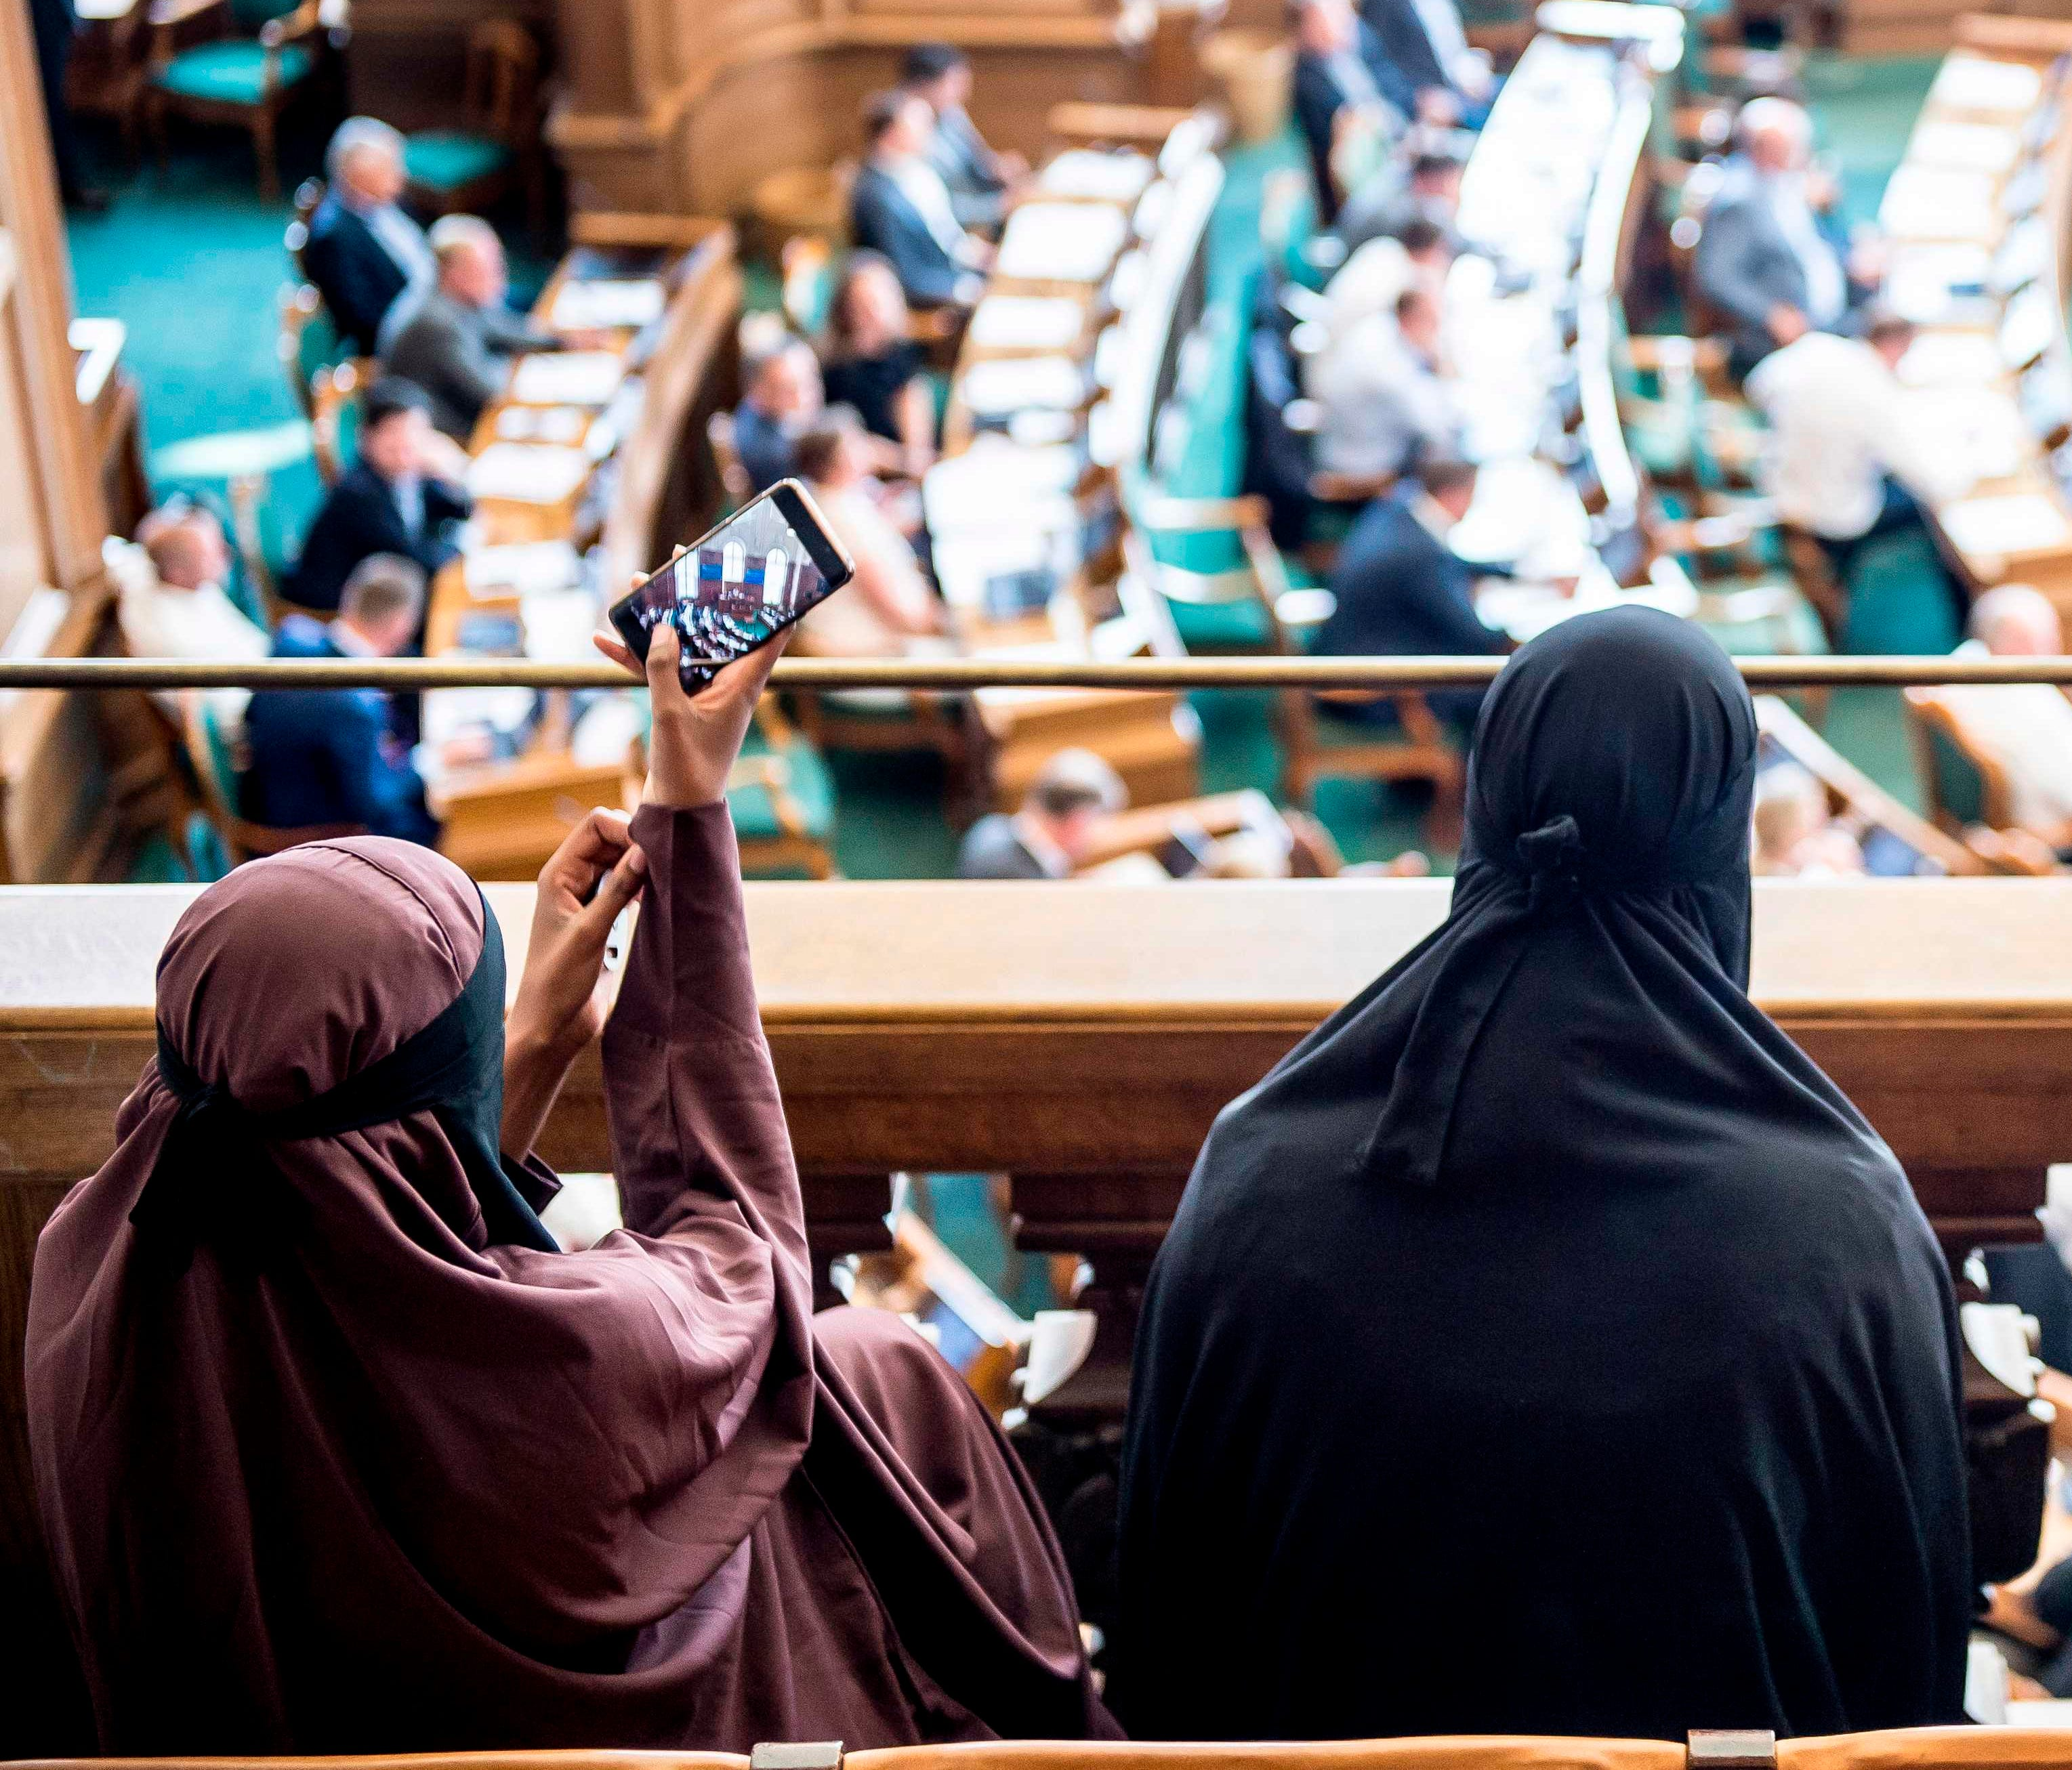 Women wearing niqab sit in the audience at the Danish Parliament in Copenhagen, Denmark, on May 31, 2018.   The Danish parliament on May 31,2018, passed a law banning the Islamic full-face veil in public spaces, becoming the latest European country to